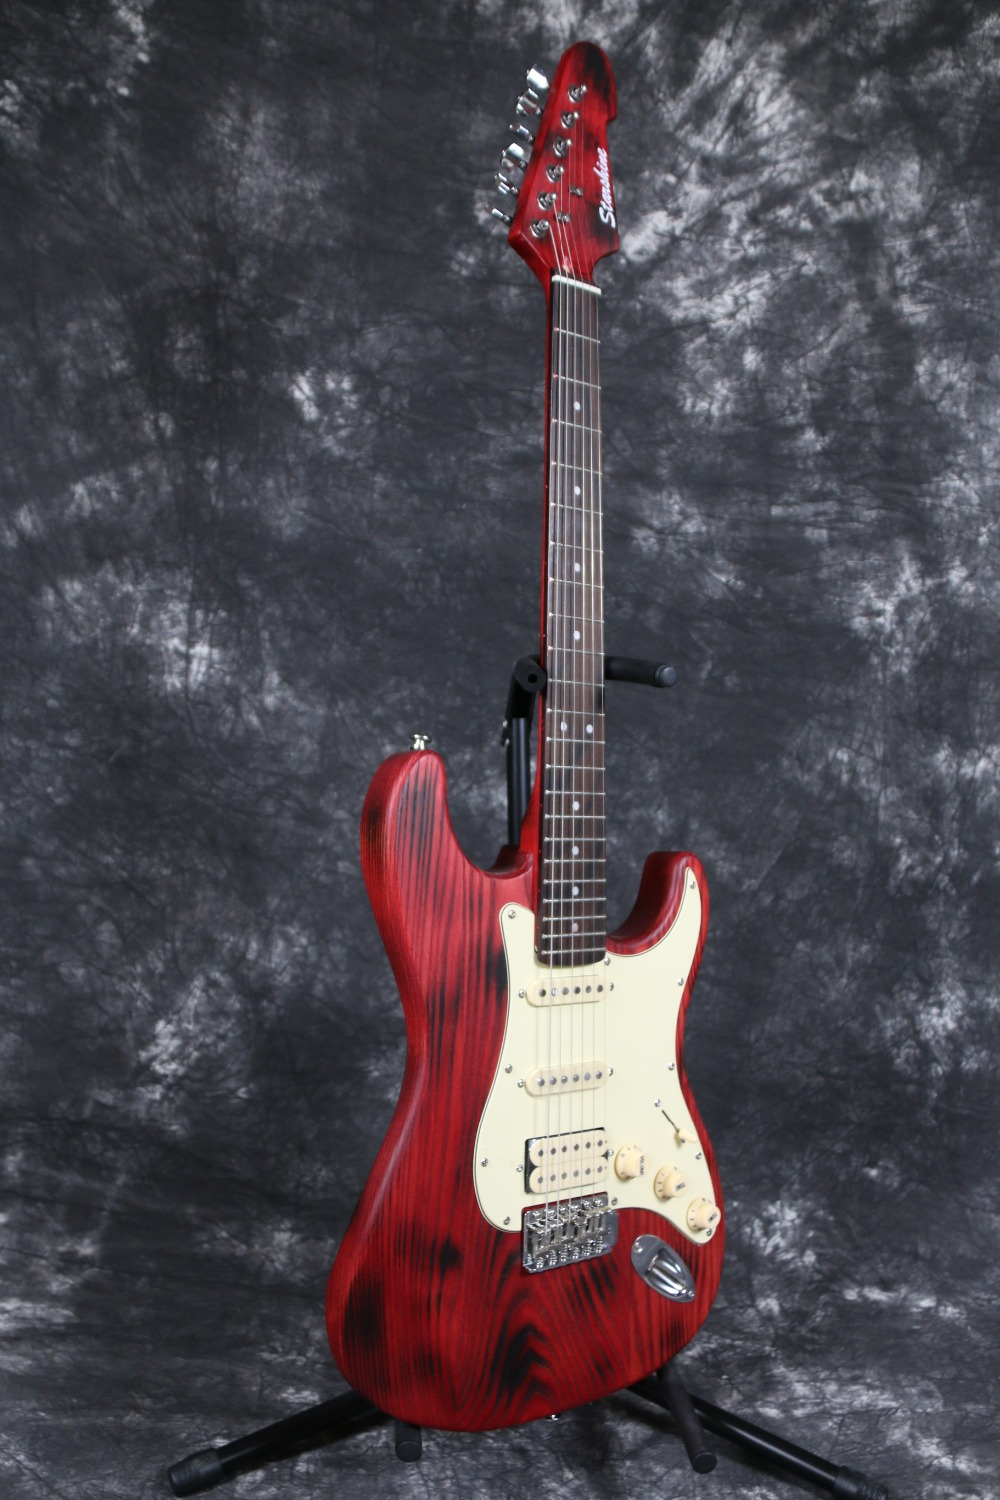 special burning spot ash body maple neck alnico pickups quality korea switch red strat electric. Black Bedroom Furniture Sets. Home Design Ideas